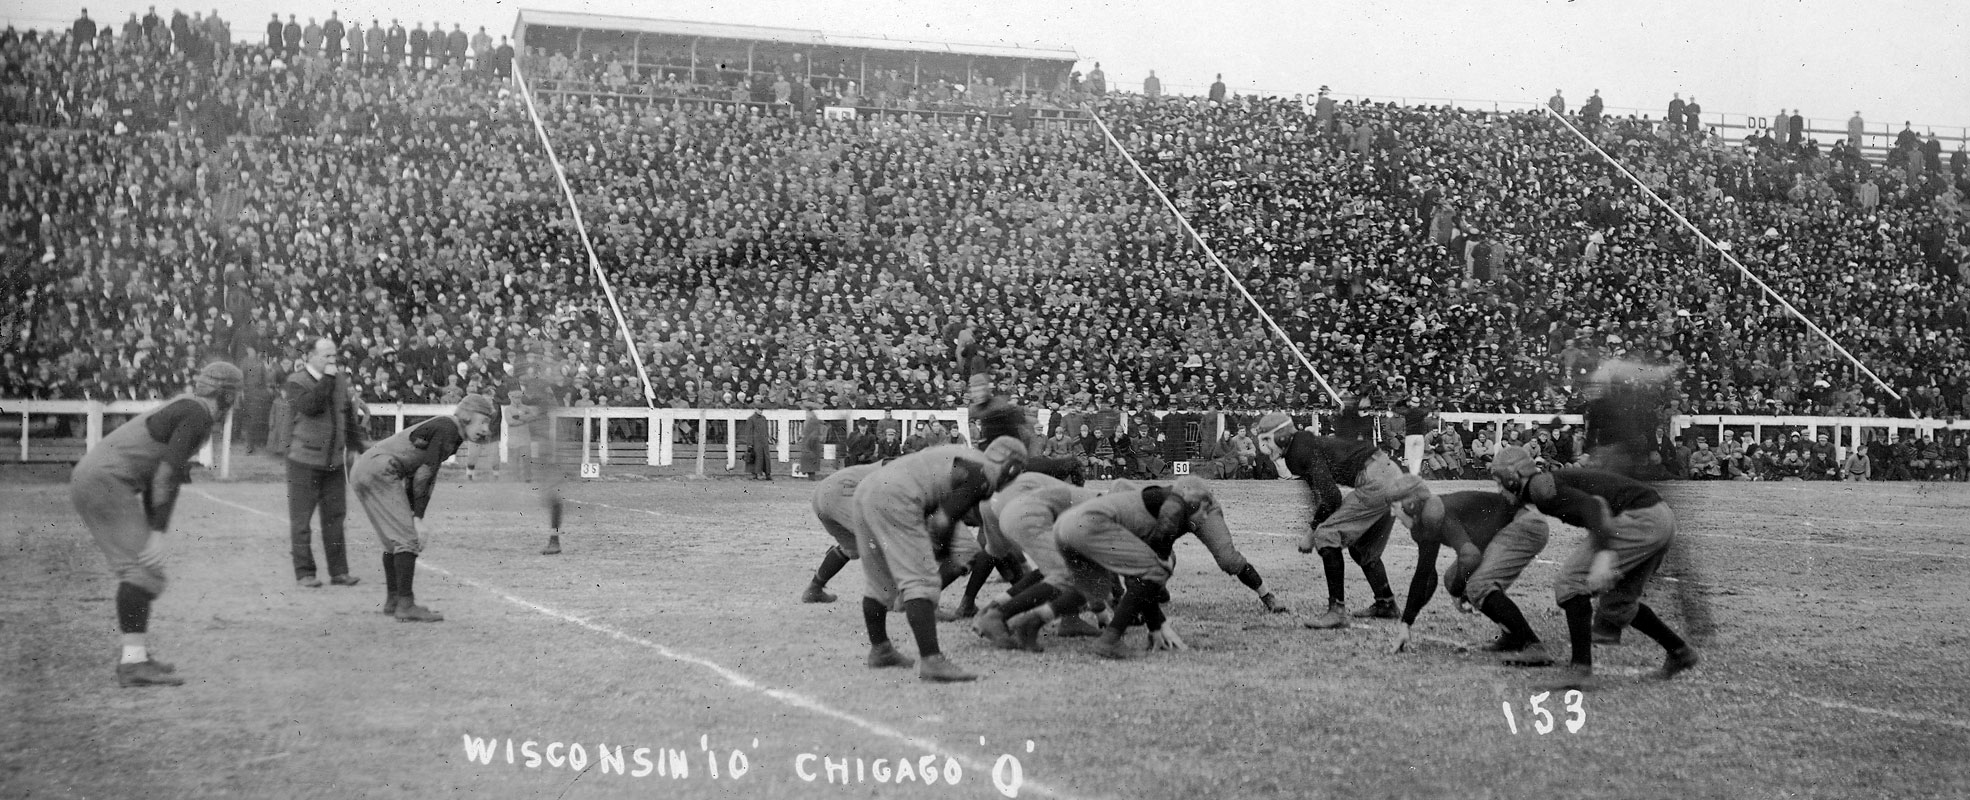 A Historic Photo of a game being played between Wisconsin and Chicago. Wisconsin Won 10 to 0.